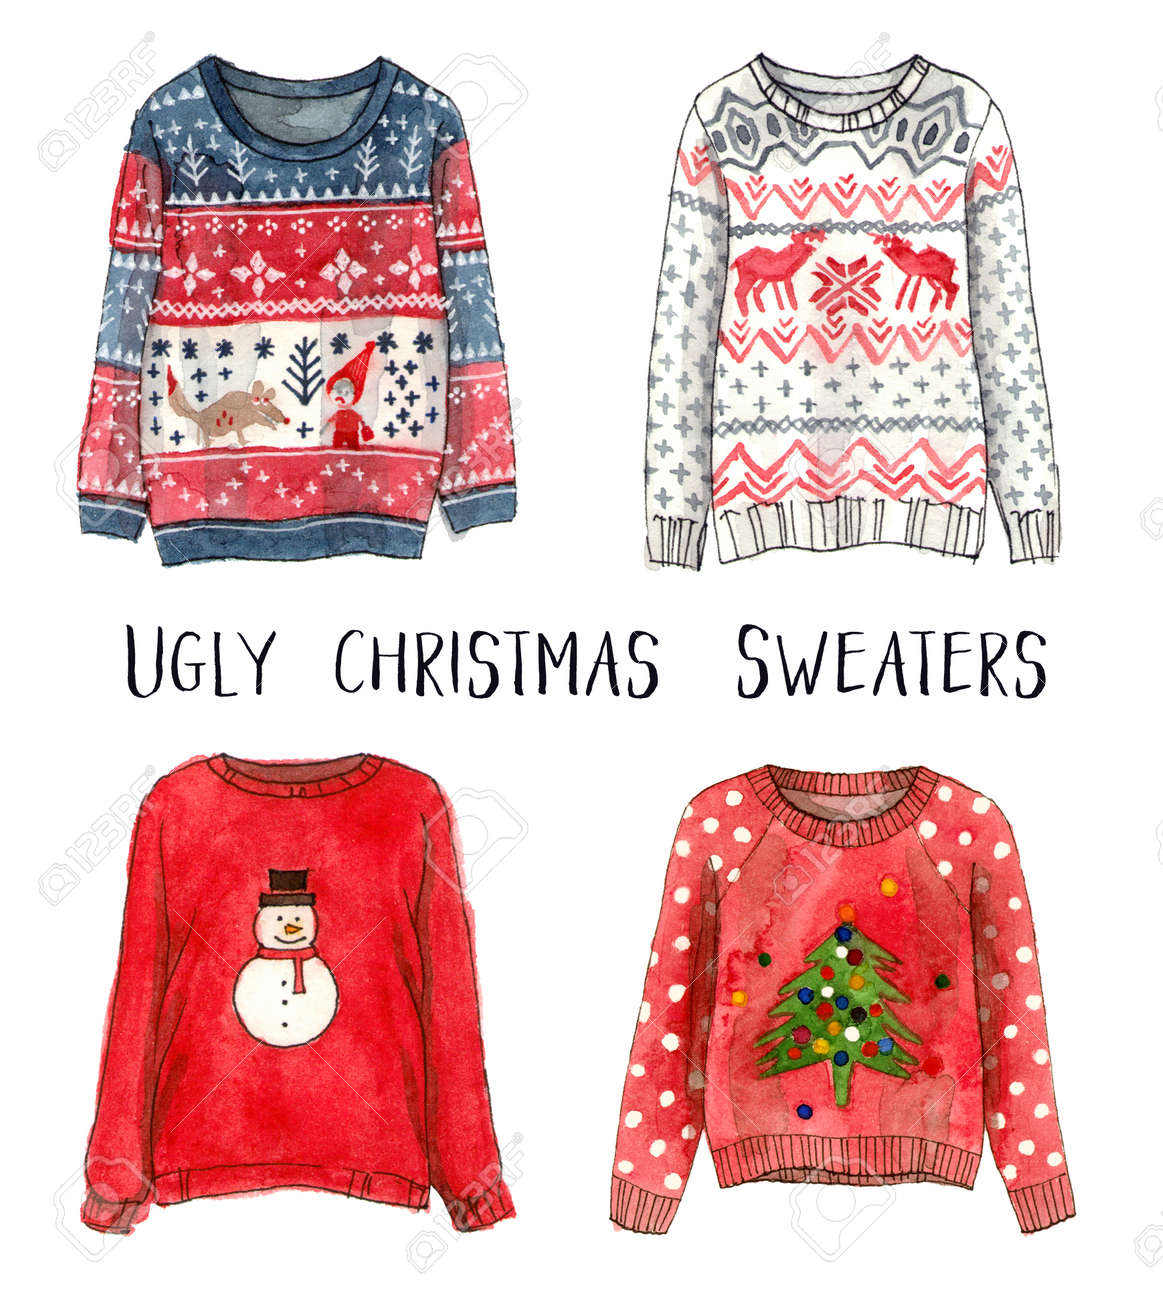 Ugly Christmas Sweaters.Ugly Christmas Sweaters Watercolor Fashion Sketches Isolated